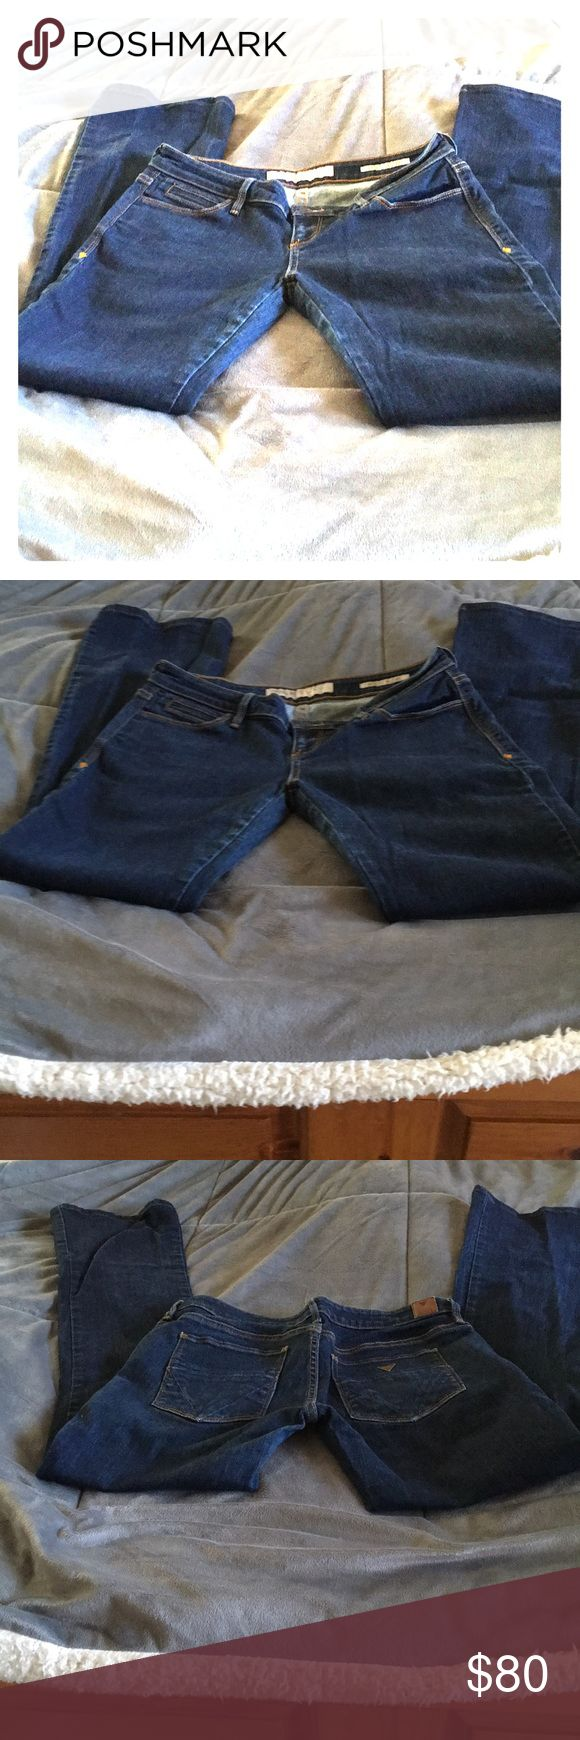 Guess jeans boot cut ultra low rise size 29 New without tags, dark rinse ultra low rise jeans from smoke free home. Rise is 8 inches and inseam is 31 inches. These jeans have stretch and qualify for free shipping. Just bundle with any additional items you like from my closet and I will send you an offer for free shipping. Guess Jeans Boot Cut